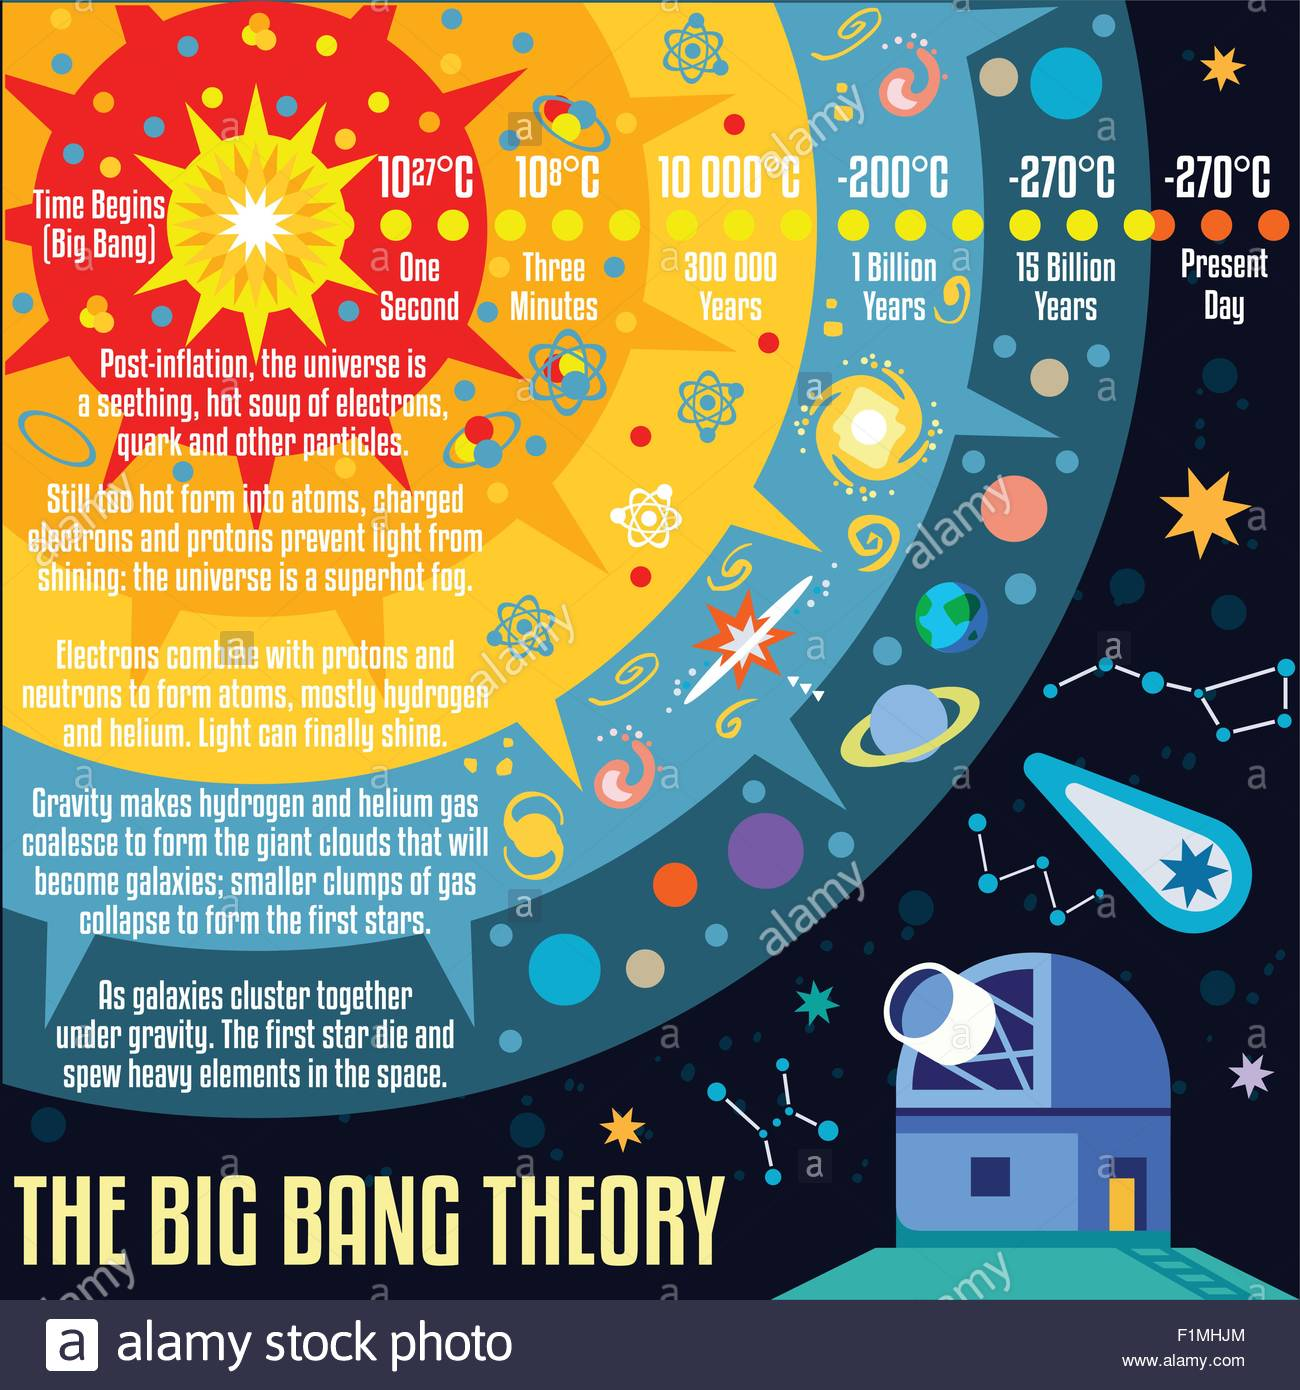 The Big Bang Theory The Birth Of The Universe Infographic New Bright F Mhjm on 2002 Isuzu Rodeo Serpentine Belt Diagram